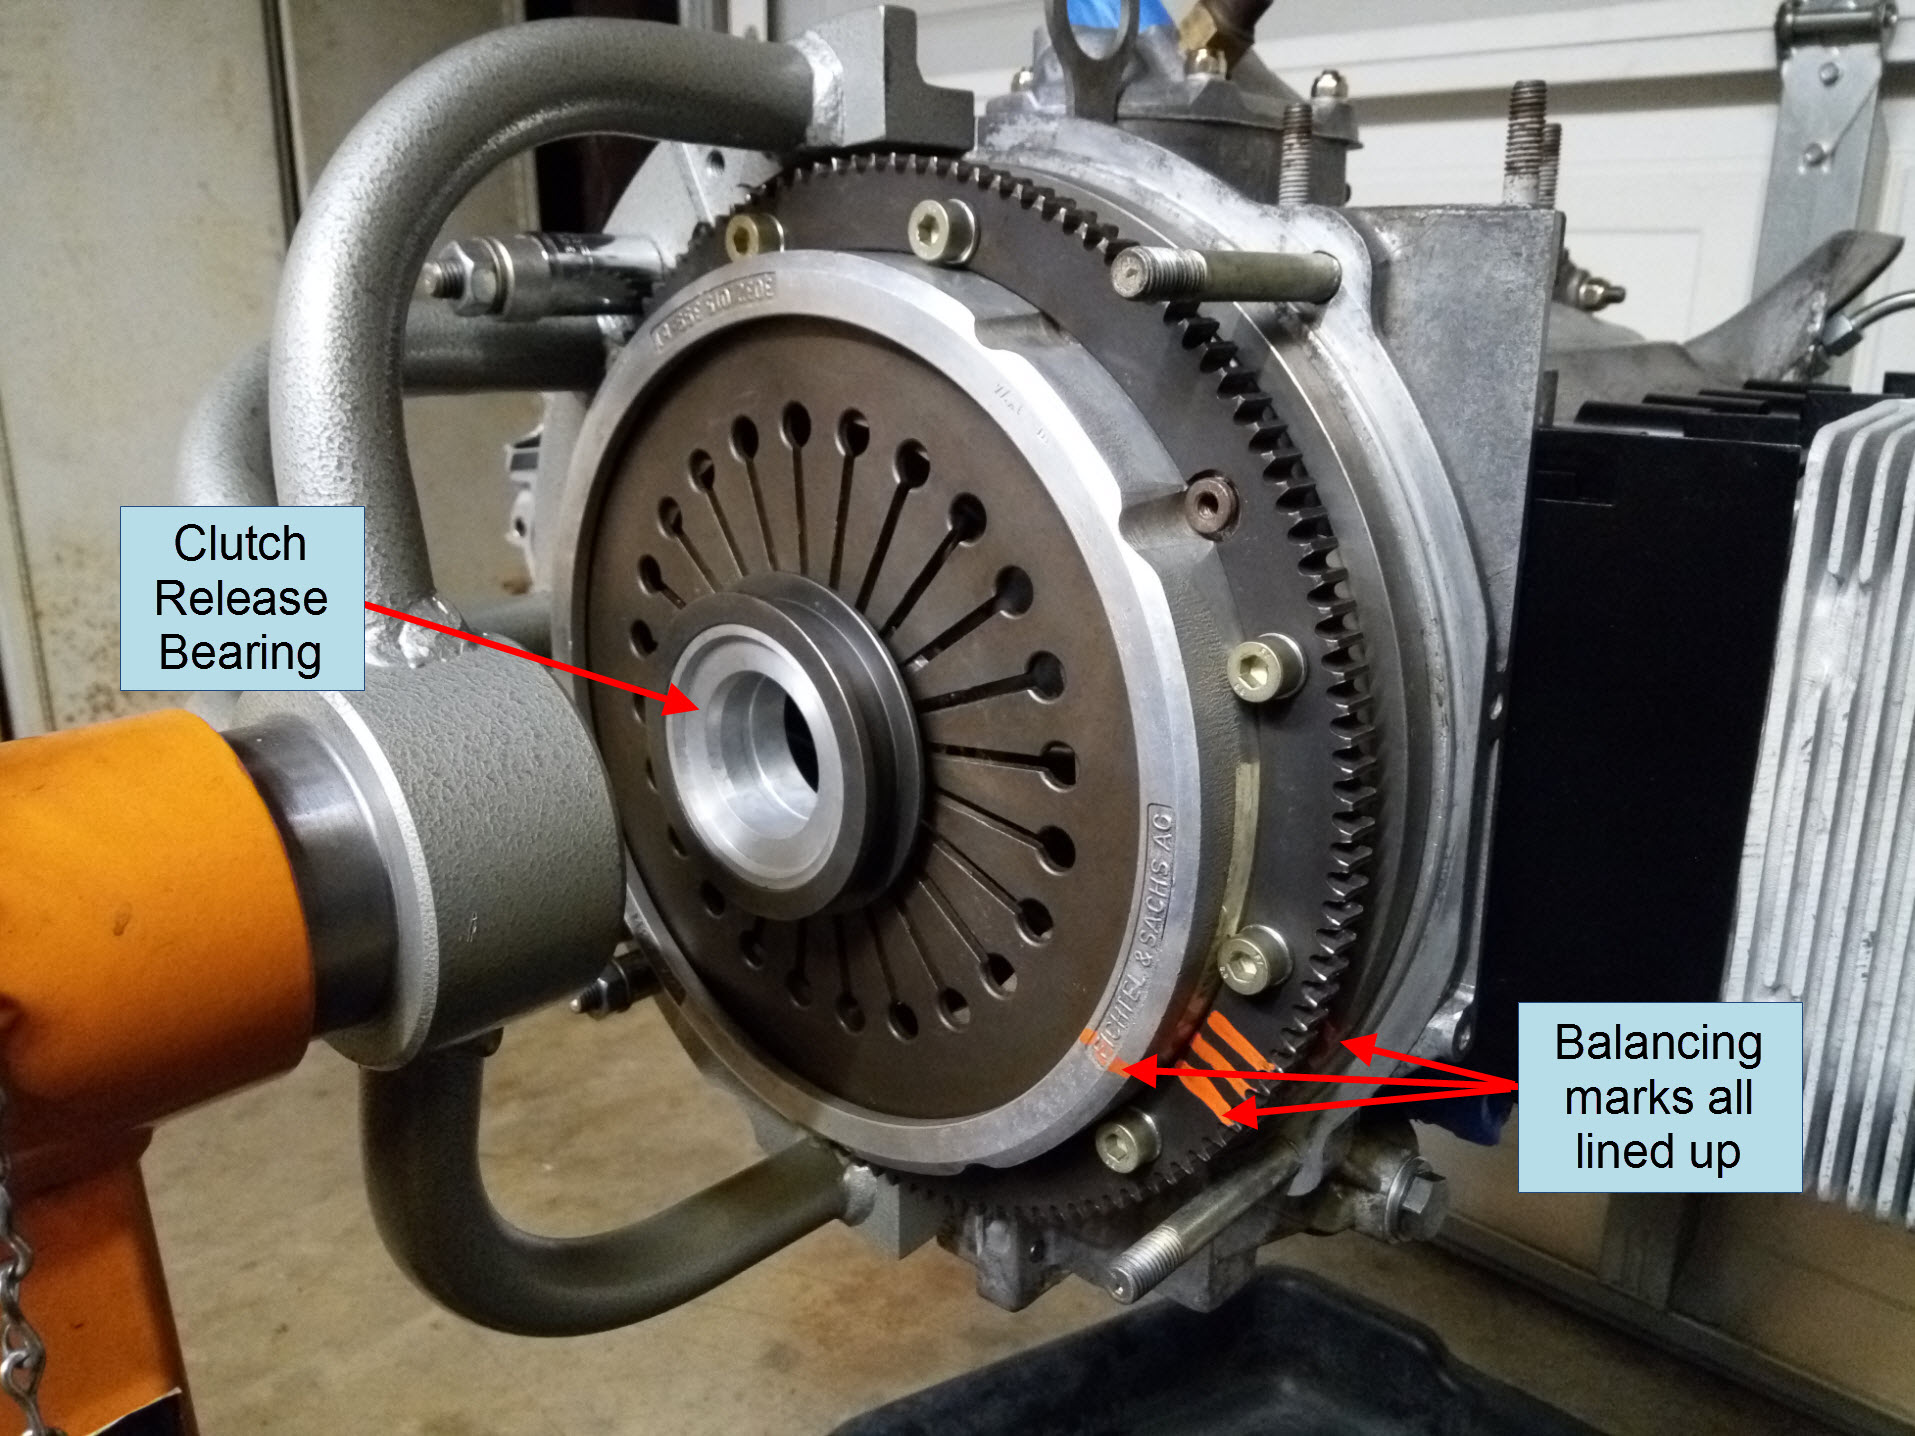 Air-cooled Porsche 911 pressure plate and clutch release bearing installation.